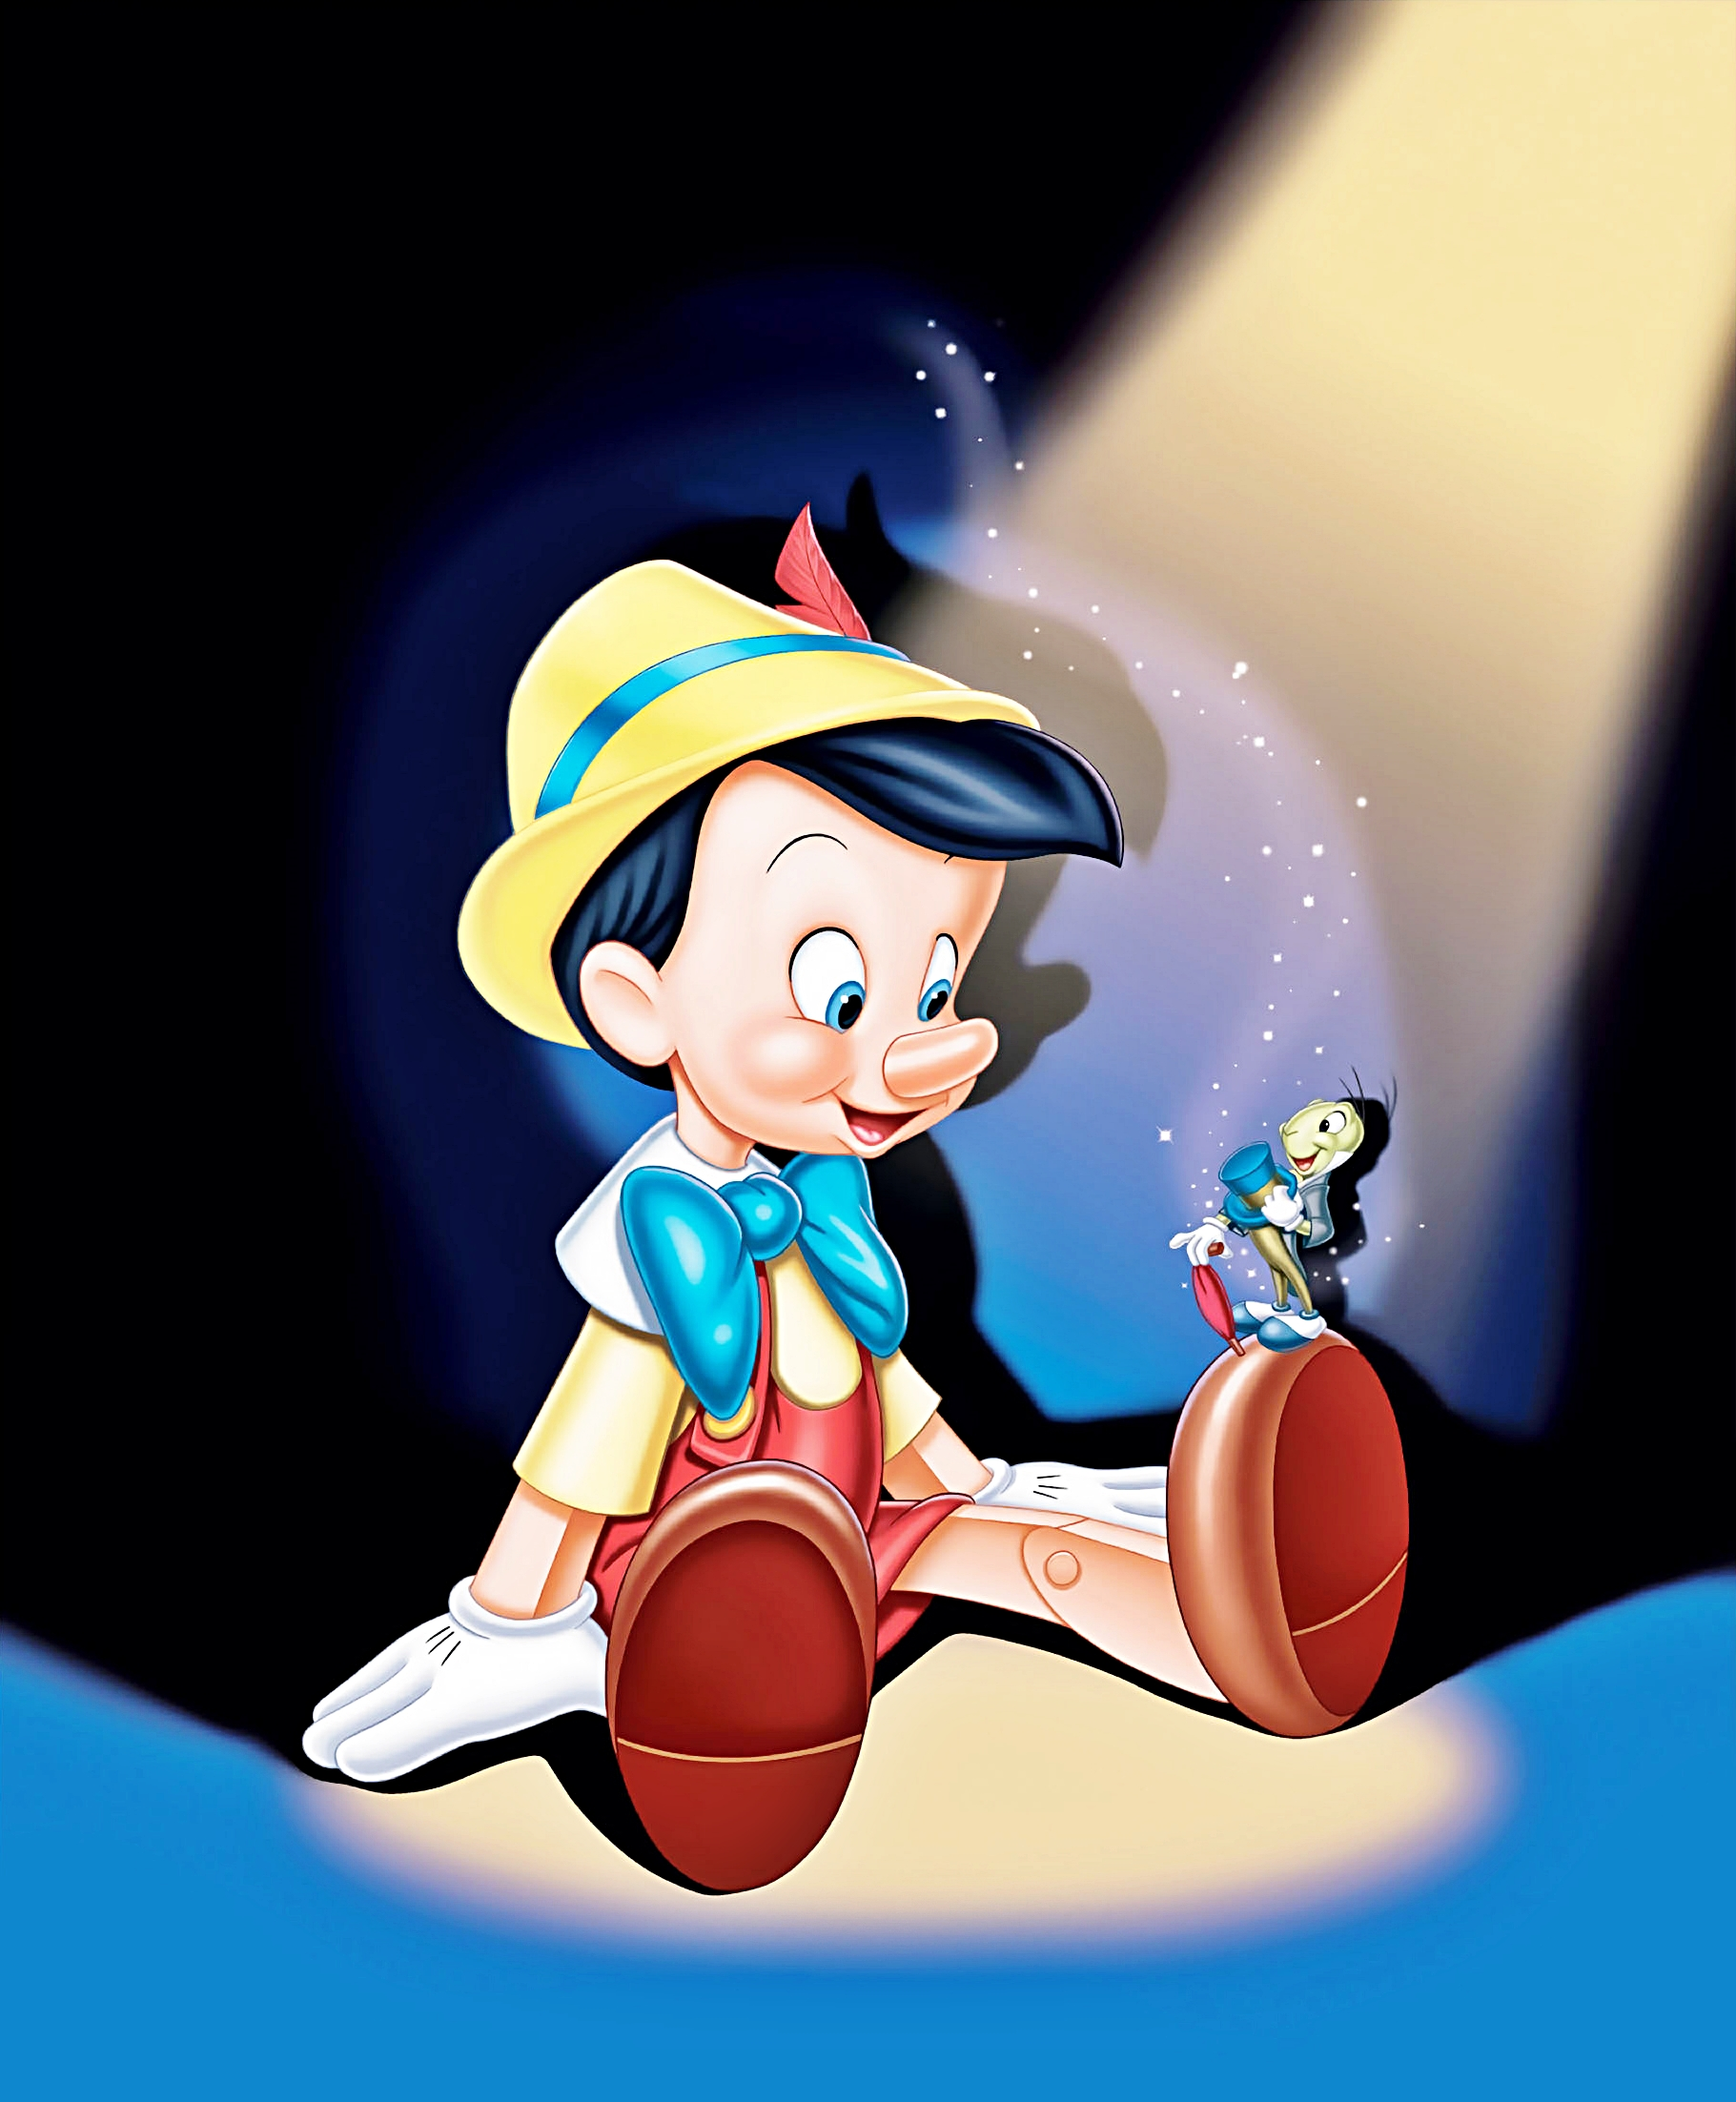 Pinocchio clipart walt disney Quality Wallpaper Pictures High HD